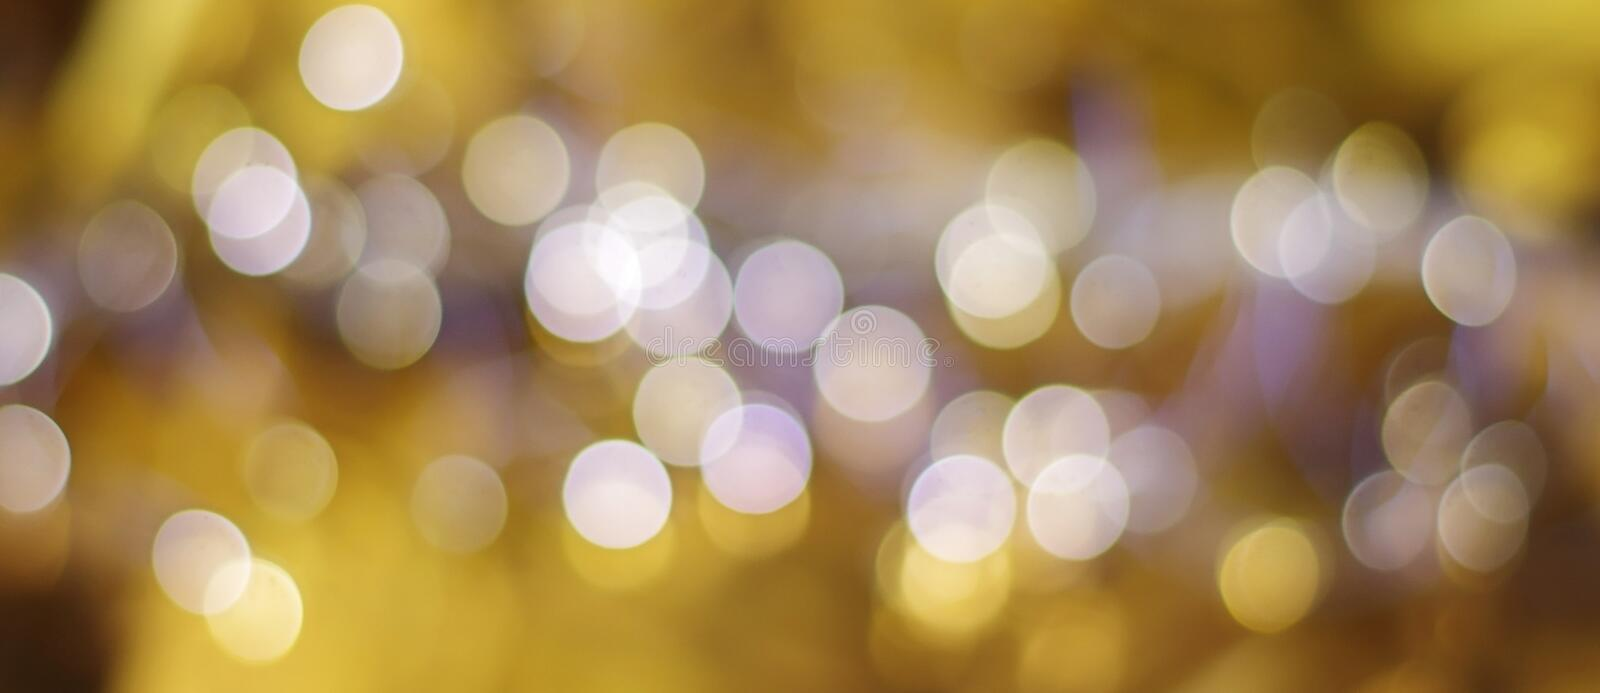 Bokeh gold colour abstract background. Long banner format.  royalty free stock image